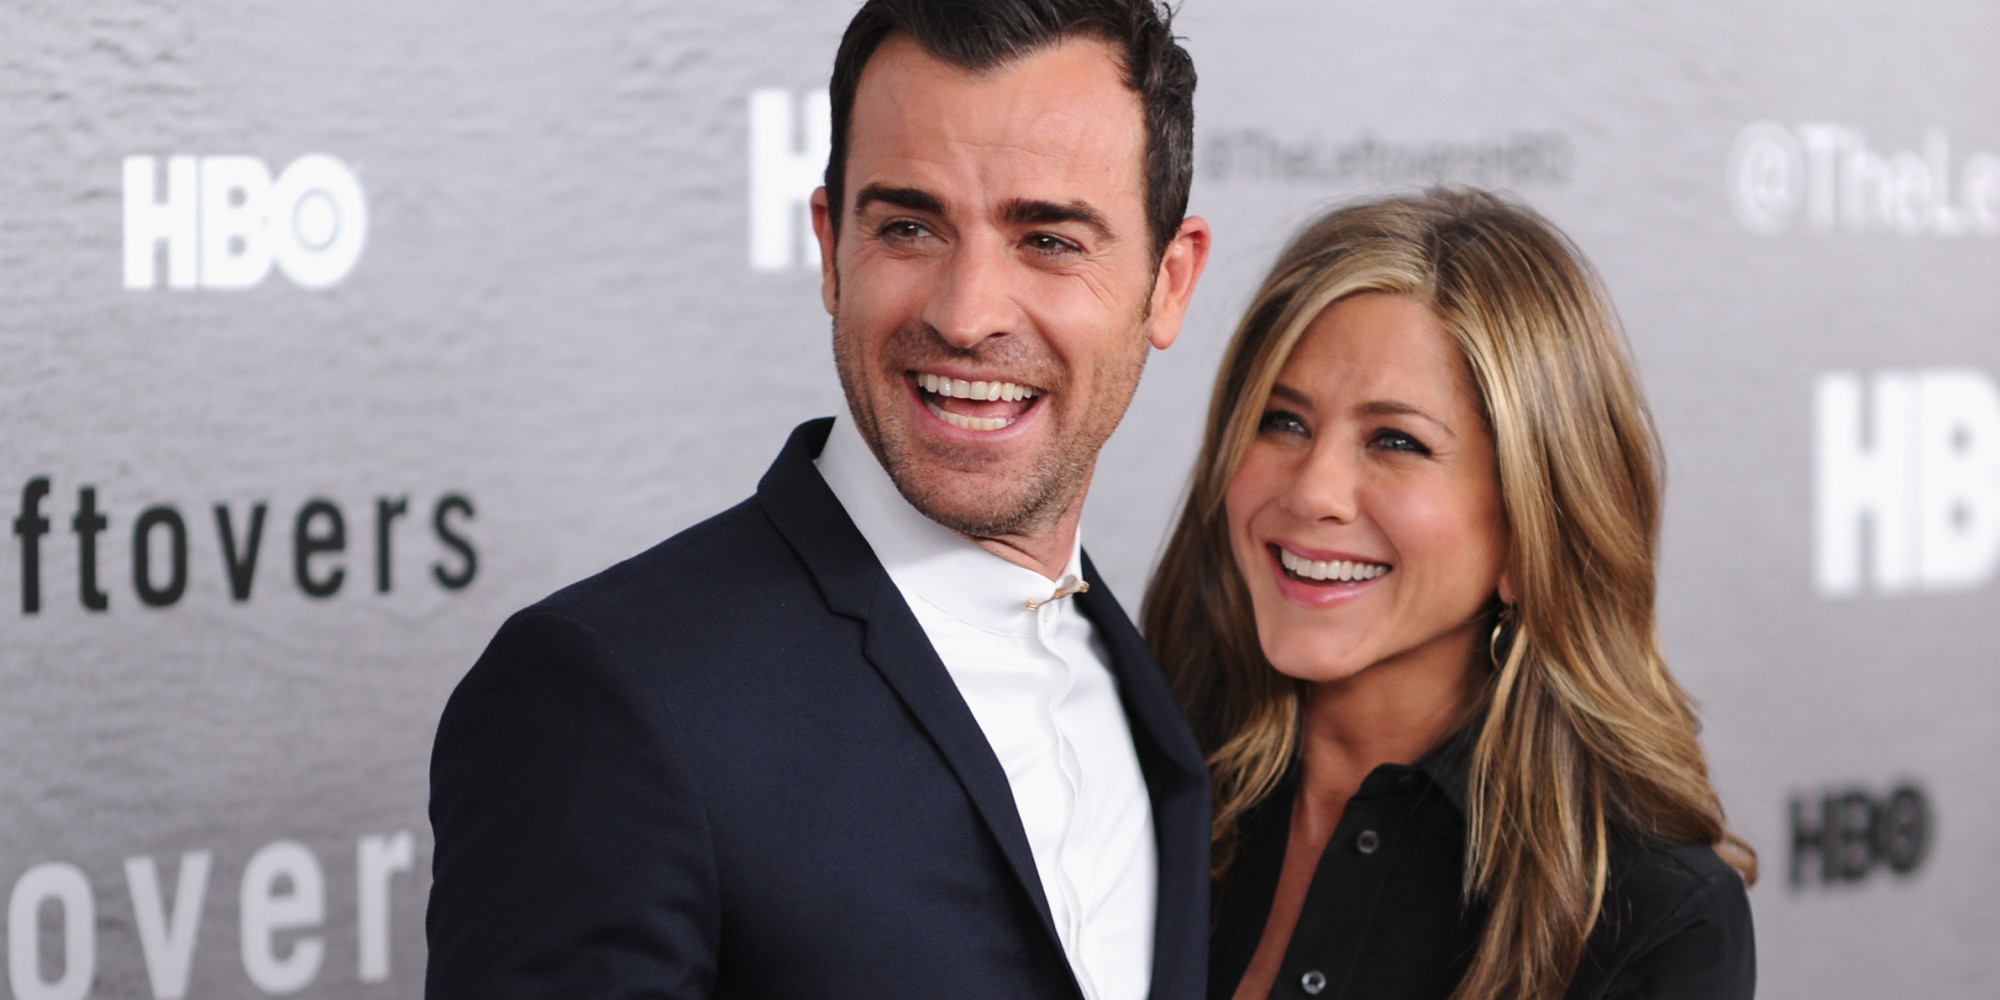 "NEW YORK, NY - JUNE 23: Actors Justin Theroux and Jennifer Aniston attend ""The Leftovers"" premiere at NYU Skirball Center on June 23, 2014 in New York City. (Photo by Dimitrios Kambouris/Getty Images)"